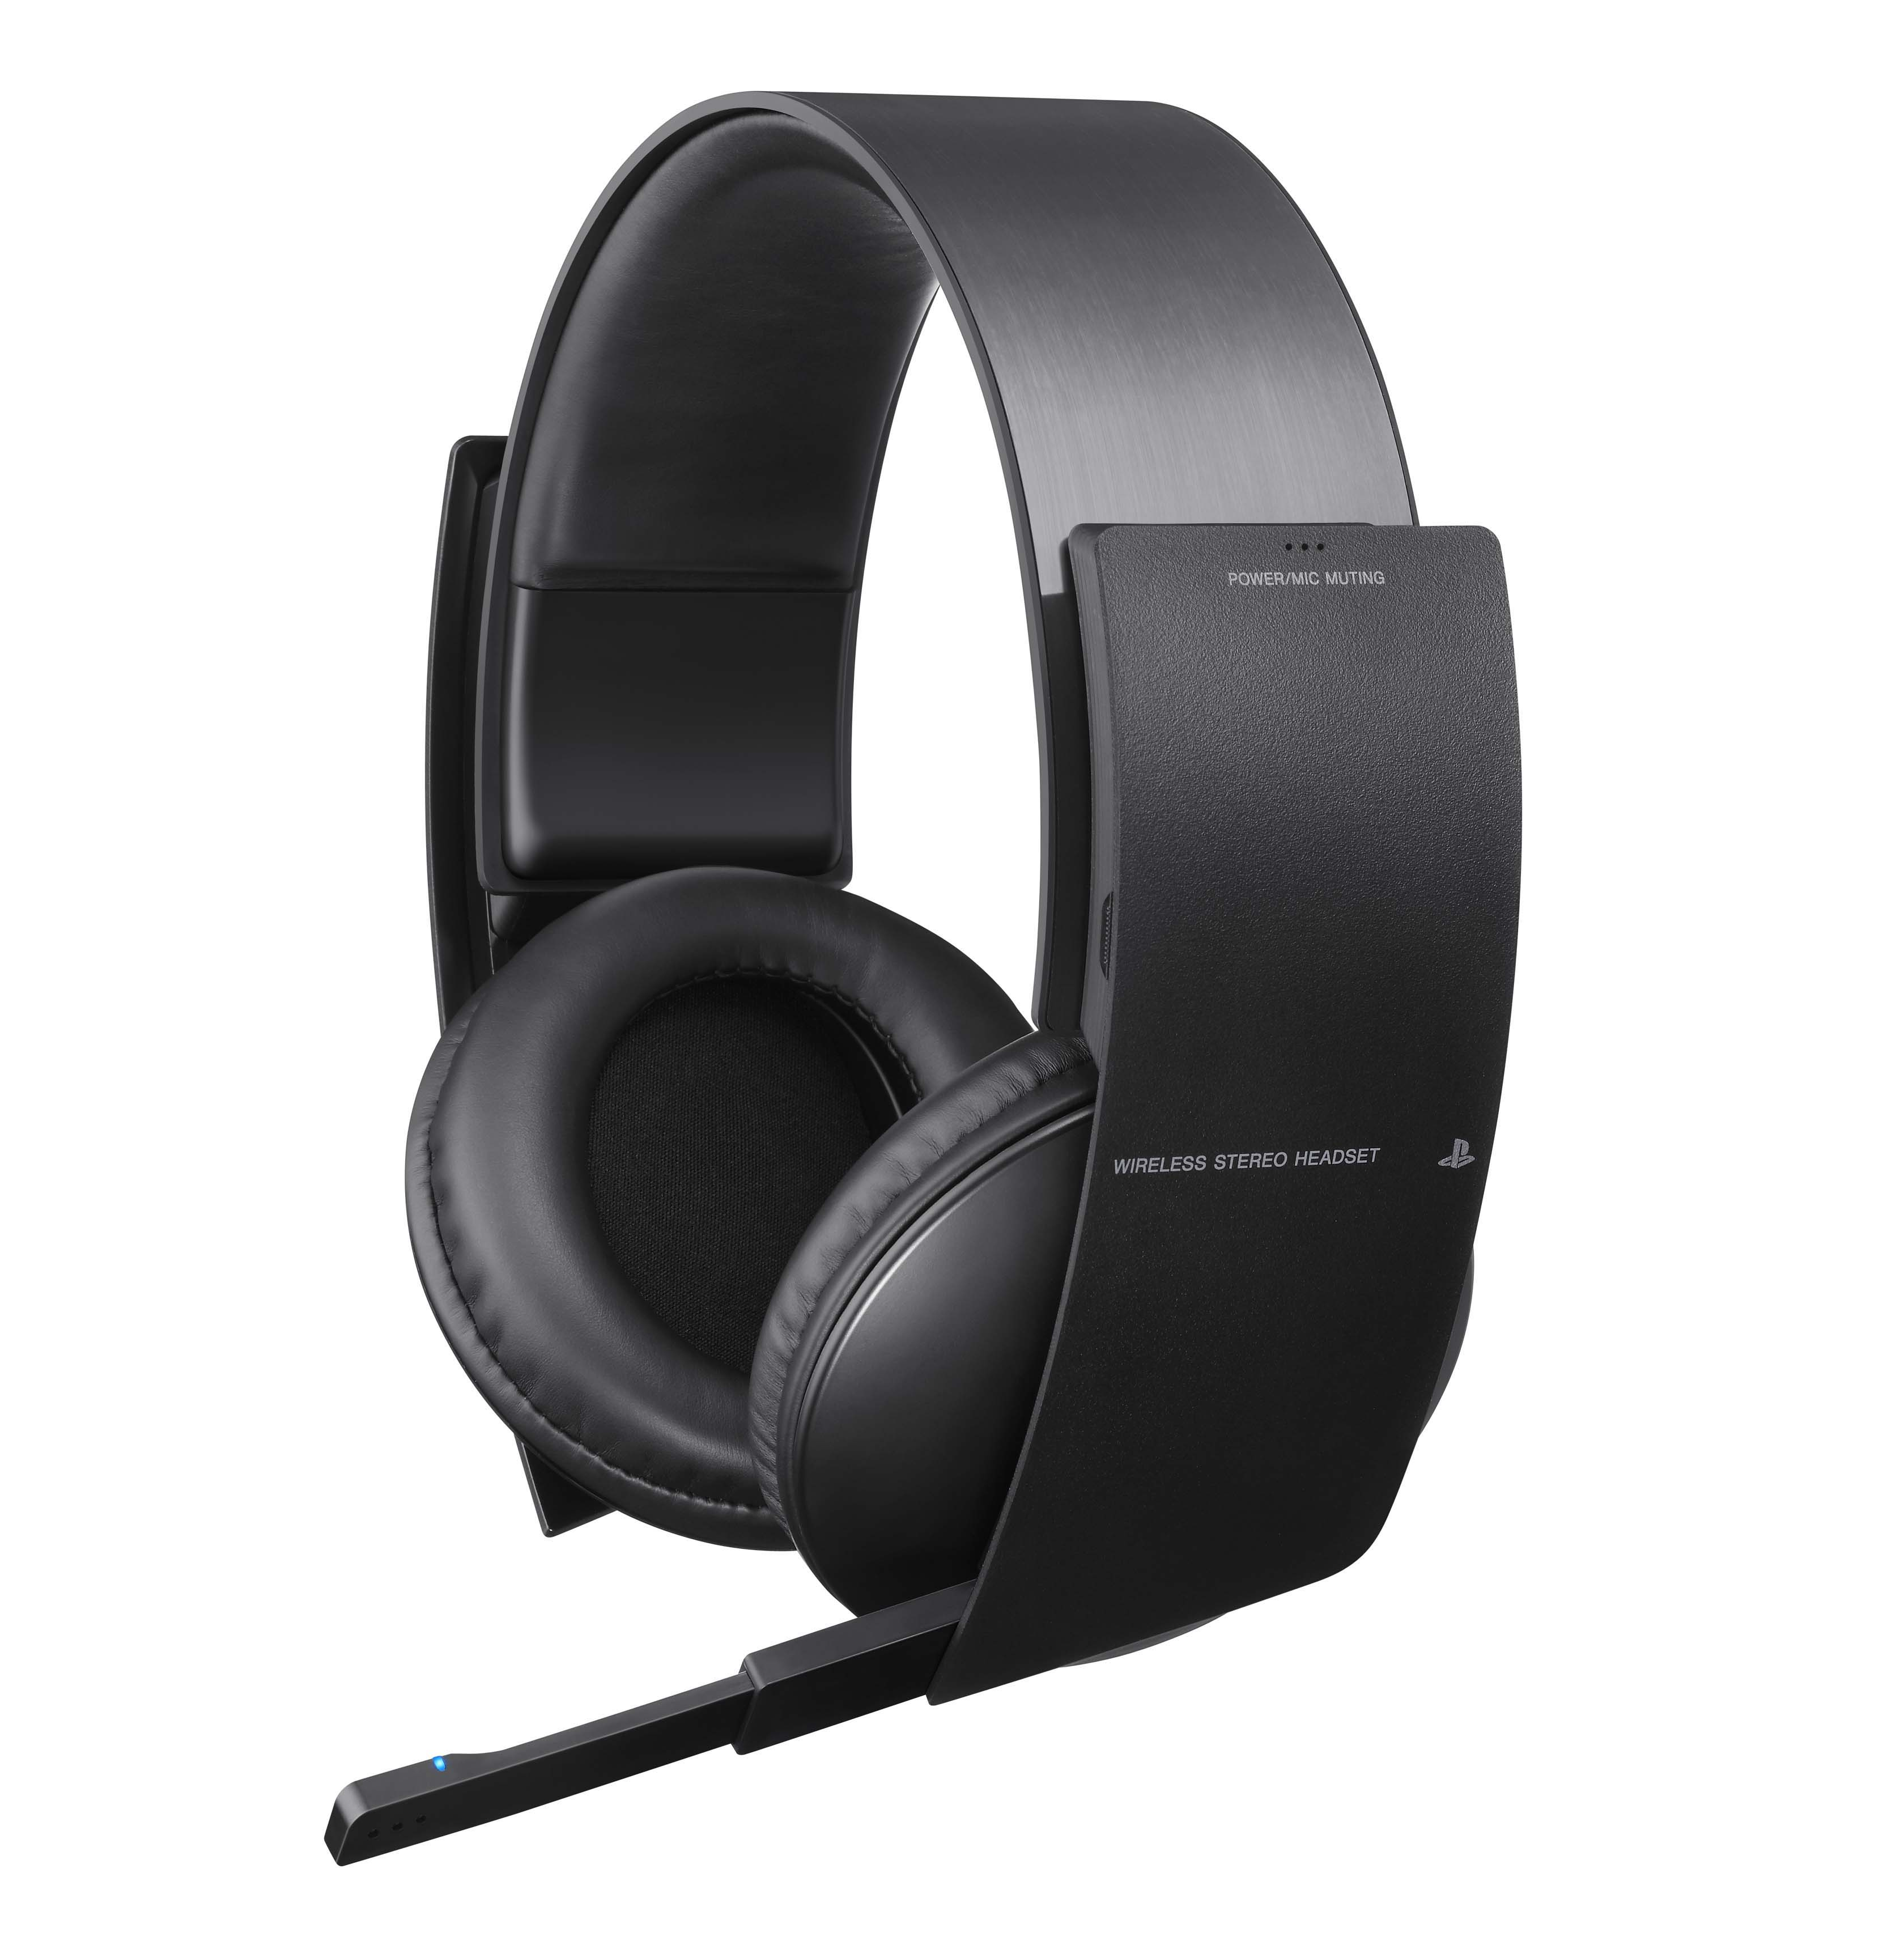 headsets ps3 sony wireless stereo headset as new bid. Black Bedroom Furniture Sets. Home Design Ideas